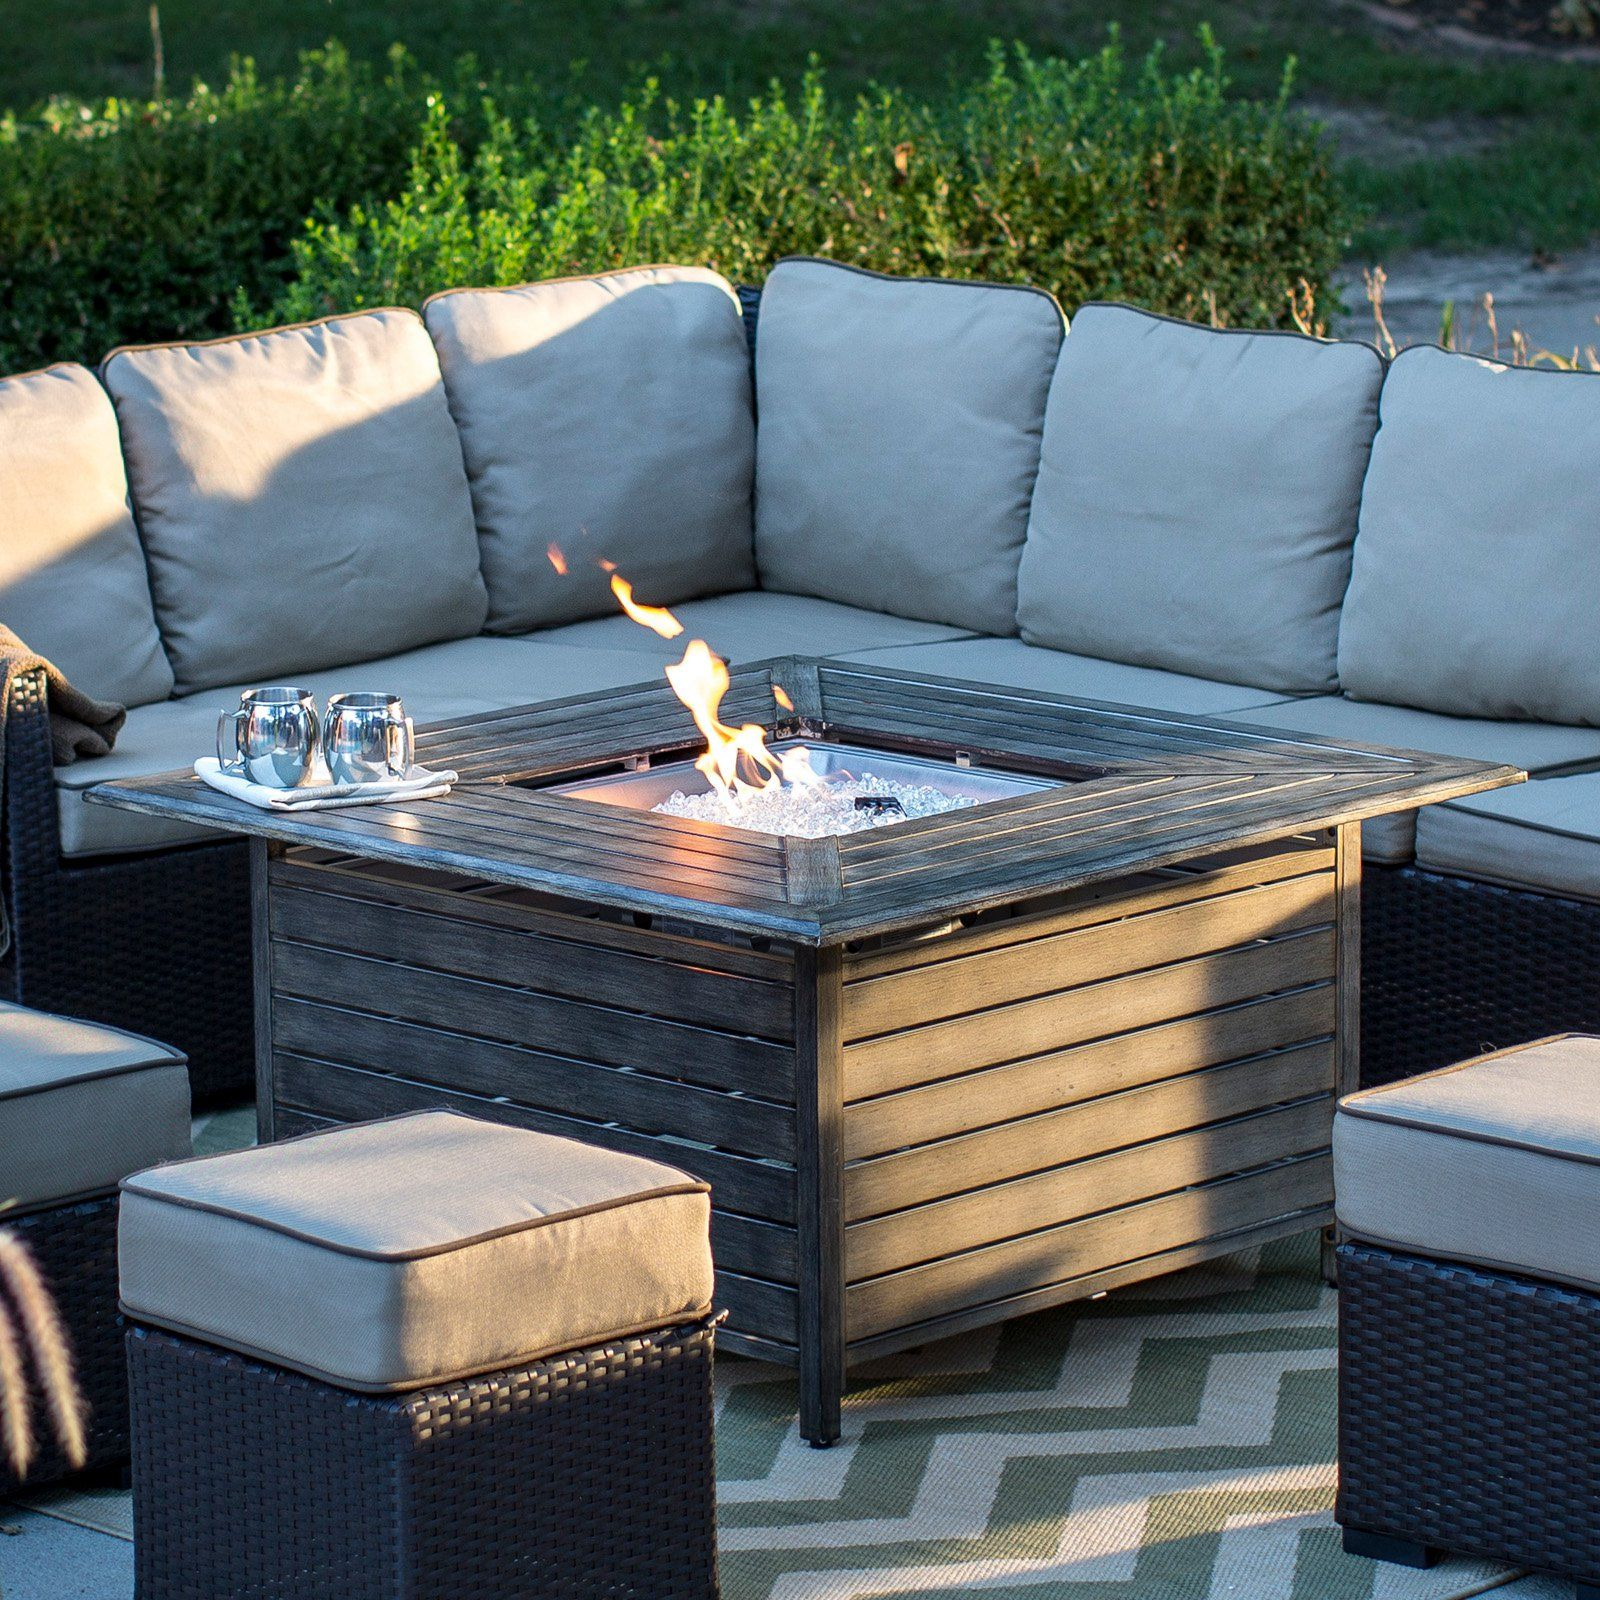 Red ember willow aluminum propane gas fire pit table from